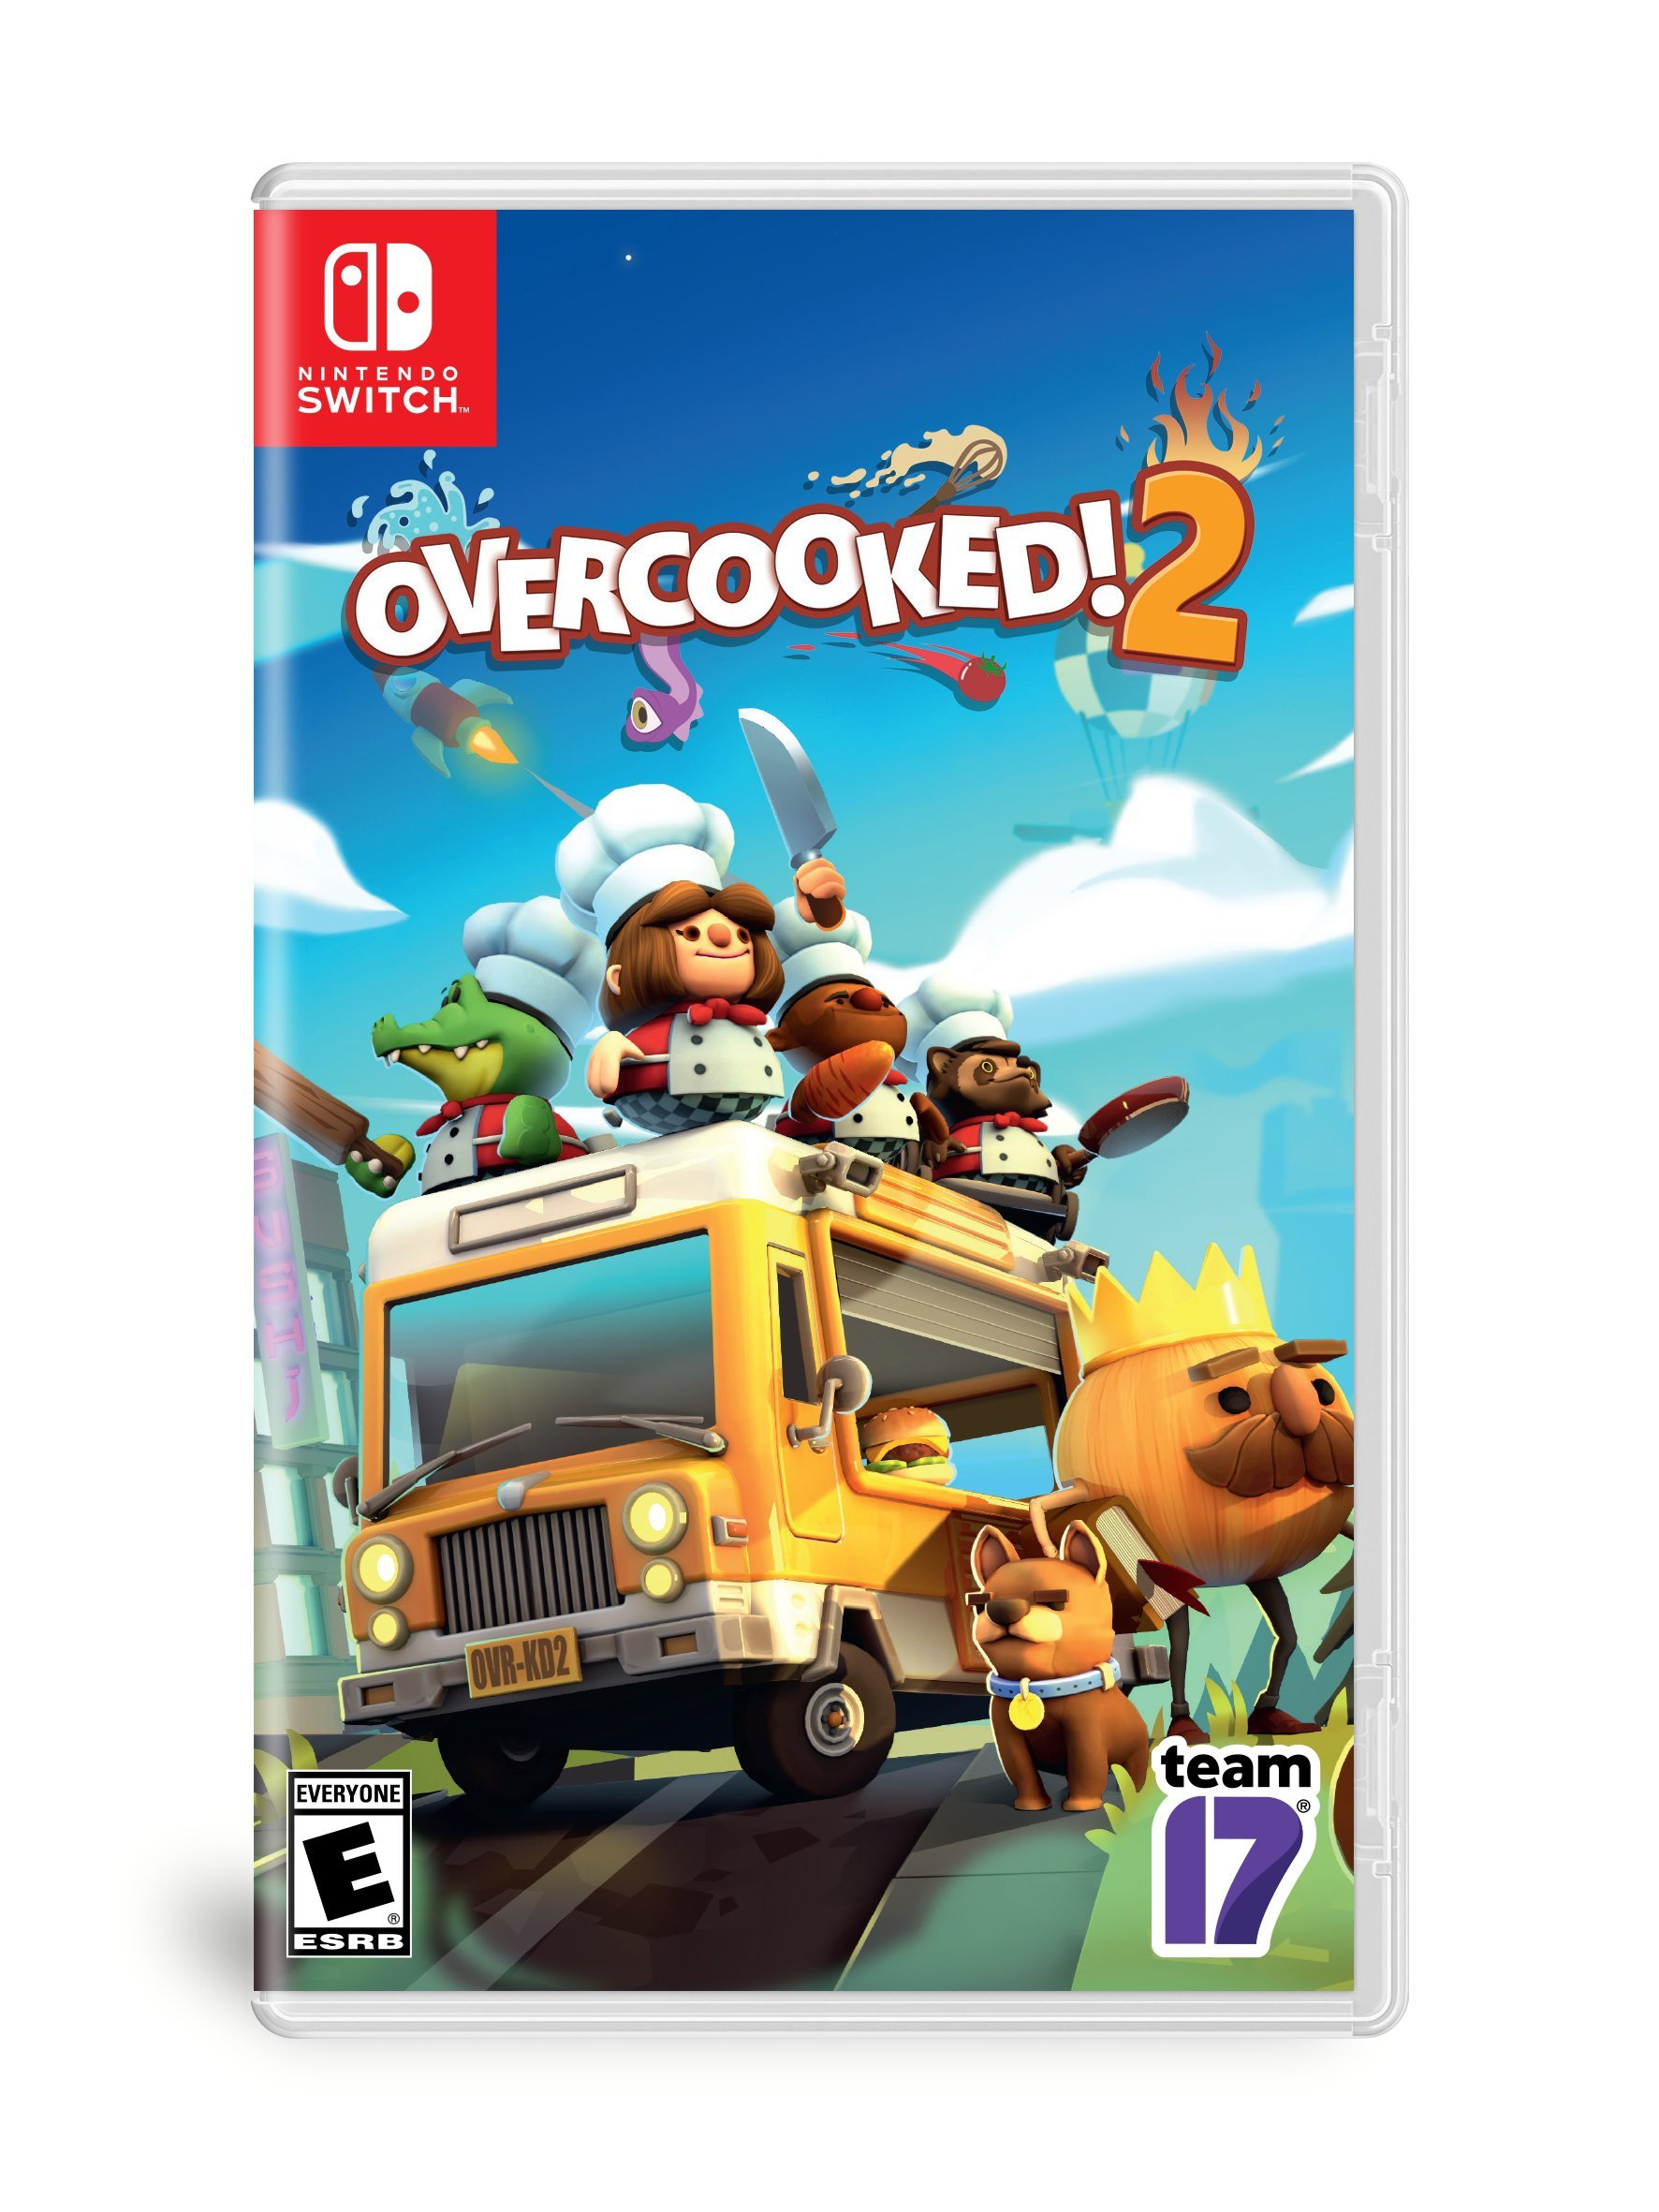 Overcooked! 2 - Nintendo Switch by Sold Out (Image #1)